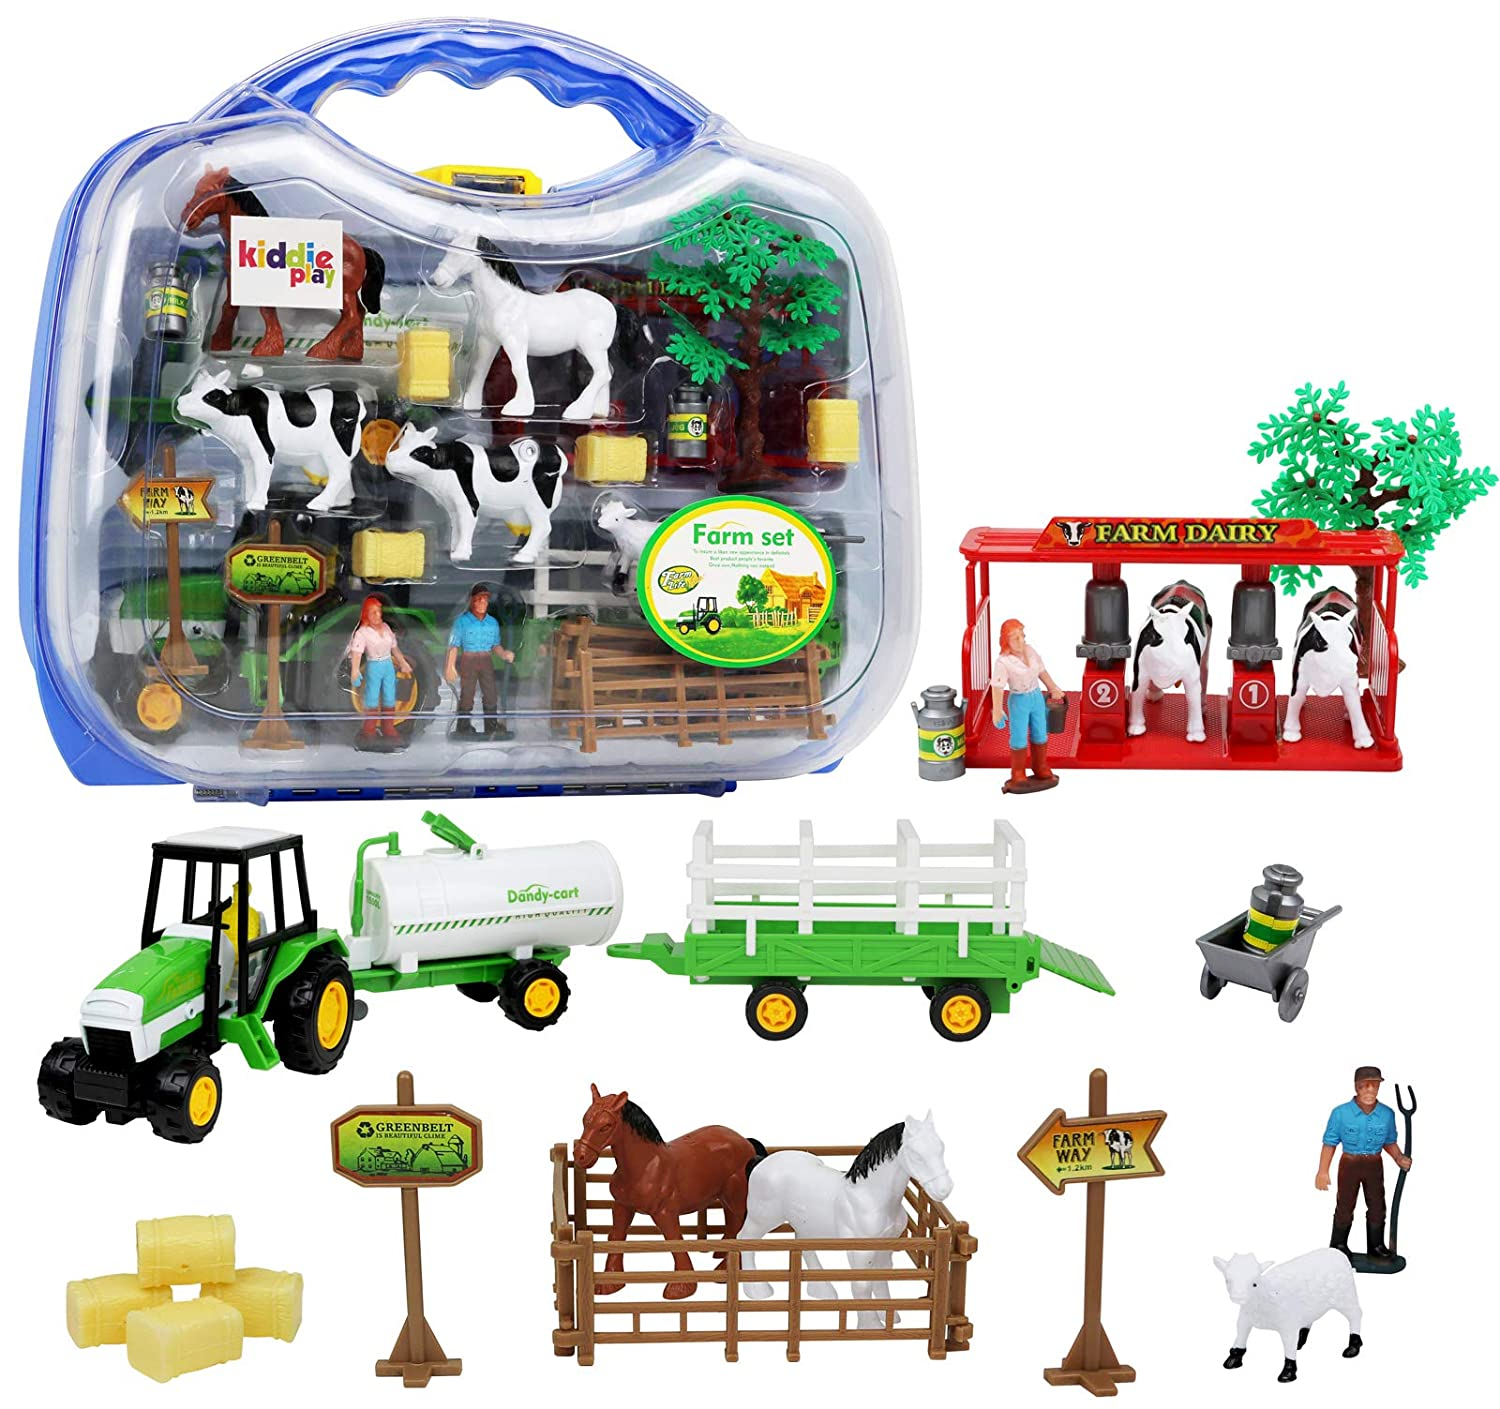 25 pieces Kiddie Play Farm Toys Set with Farm Animals for Toddlers .